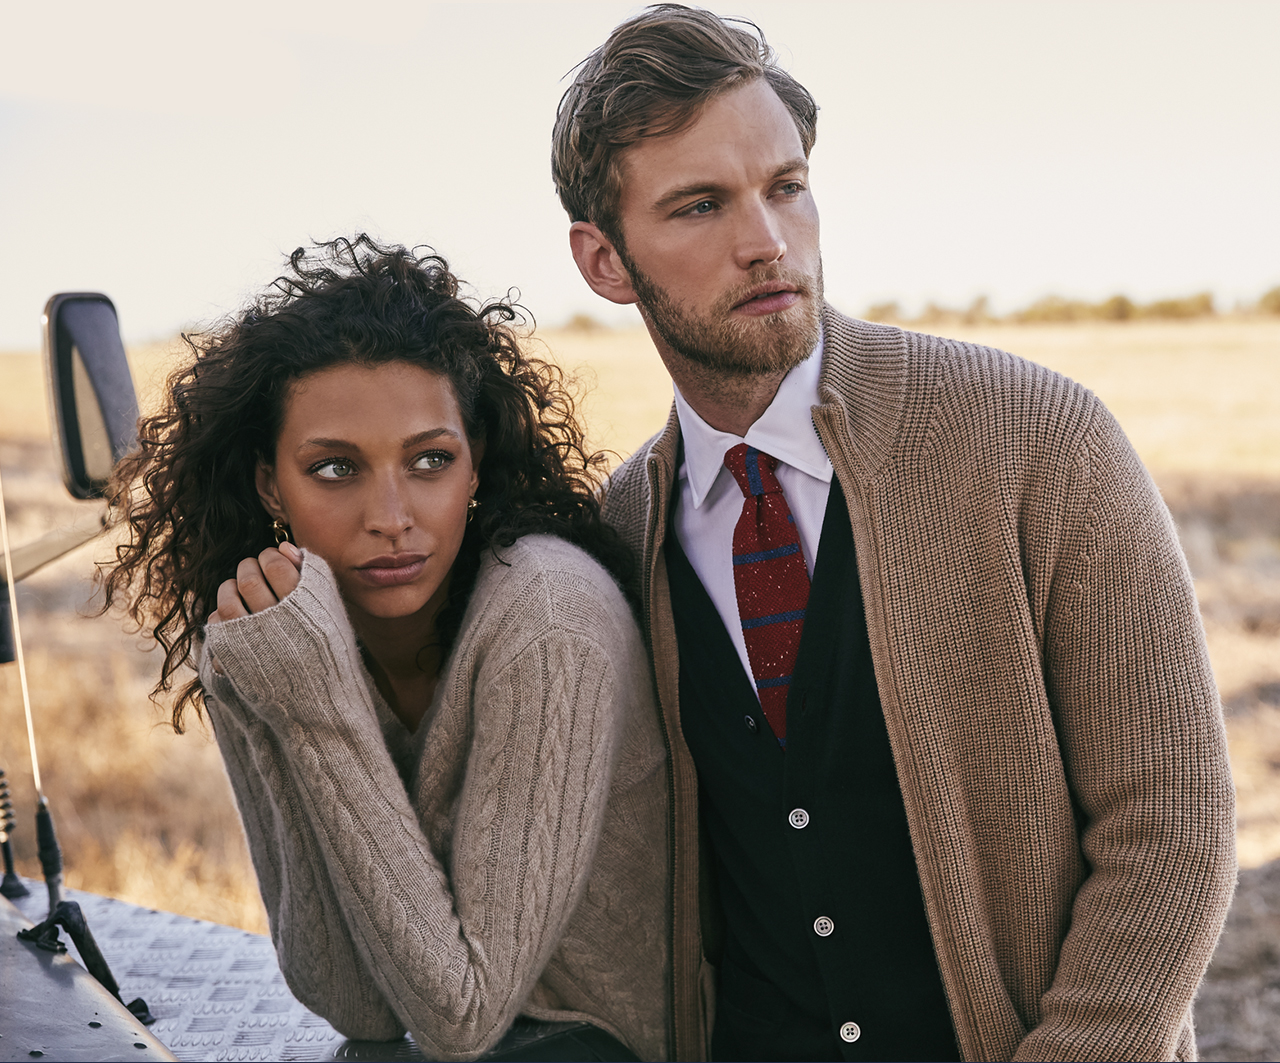 Wardrobe Essentials: Refined Sweaters - Add a layer of luxurious warmth with our sweaters for him and her.